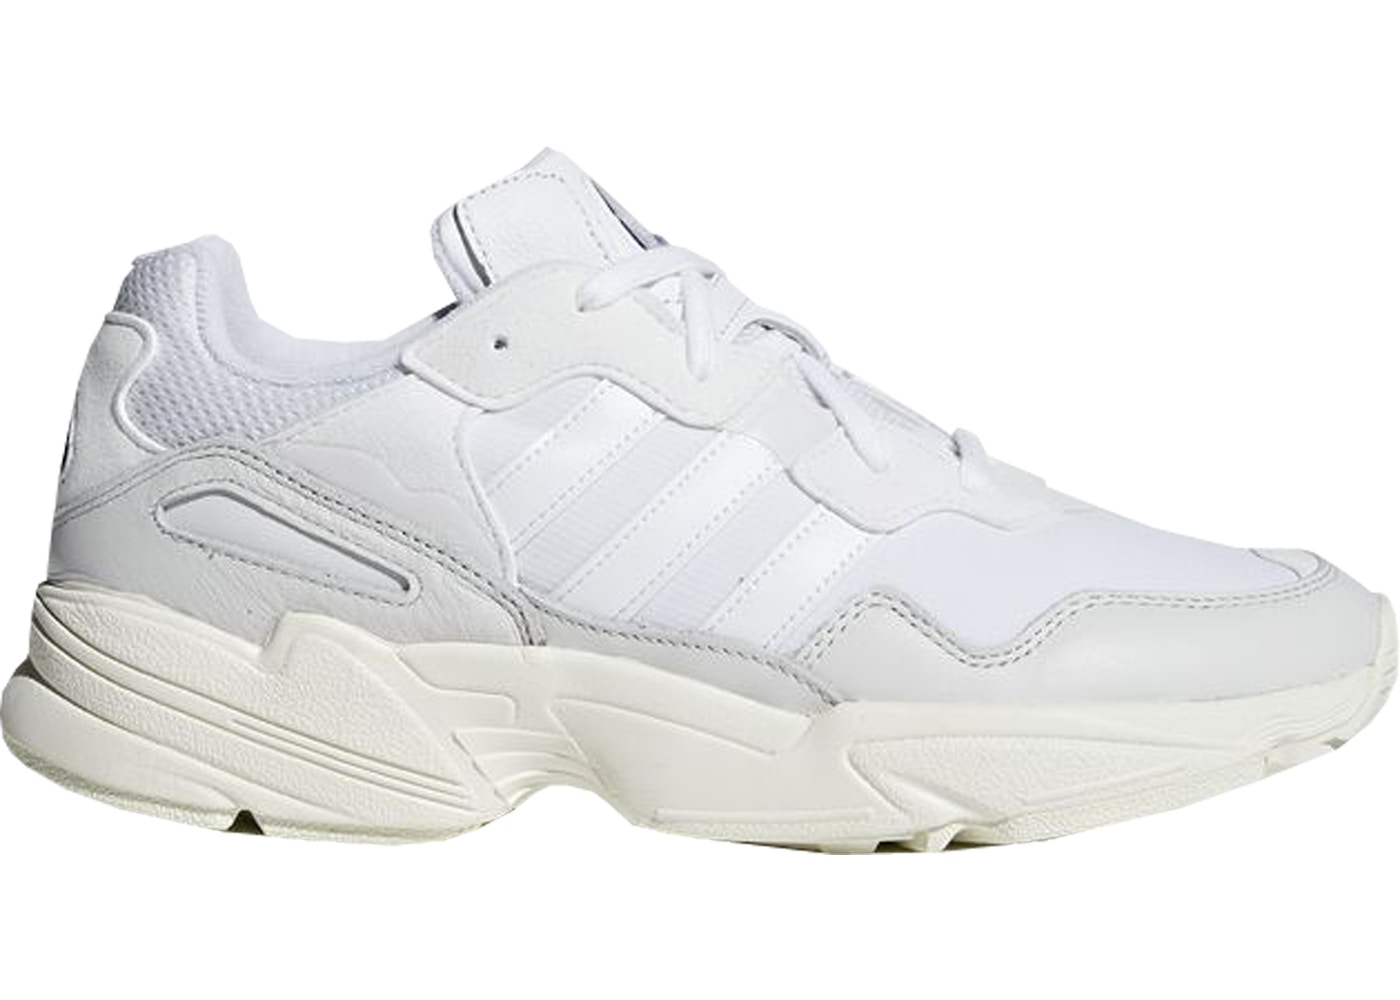 huge discount 7abb2 c818e Sell. or Ask. Size 10. View All Bids. adidas Yung-96 Triple White